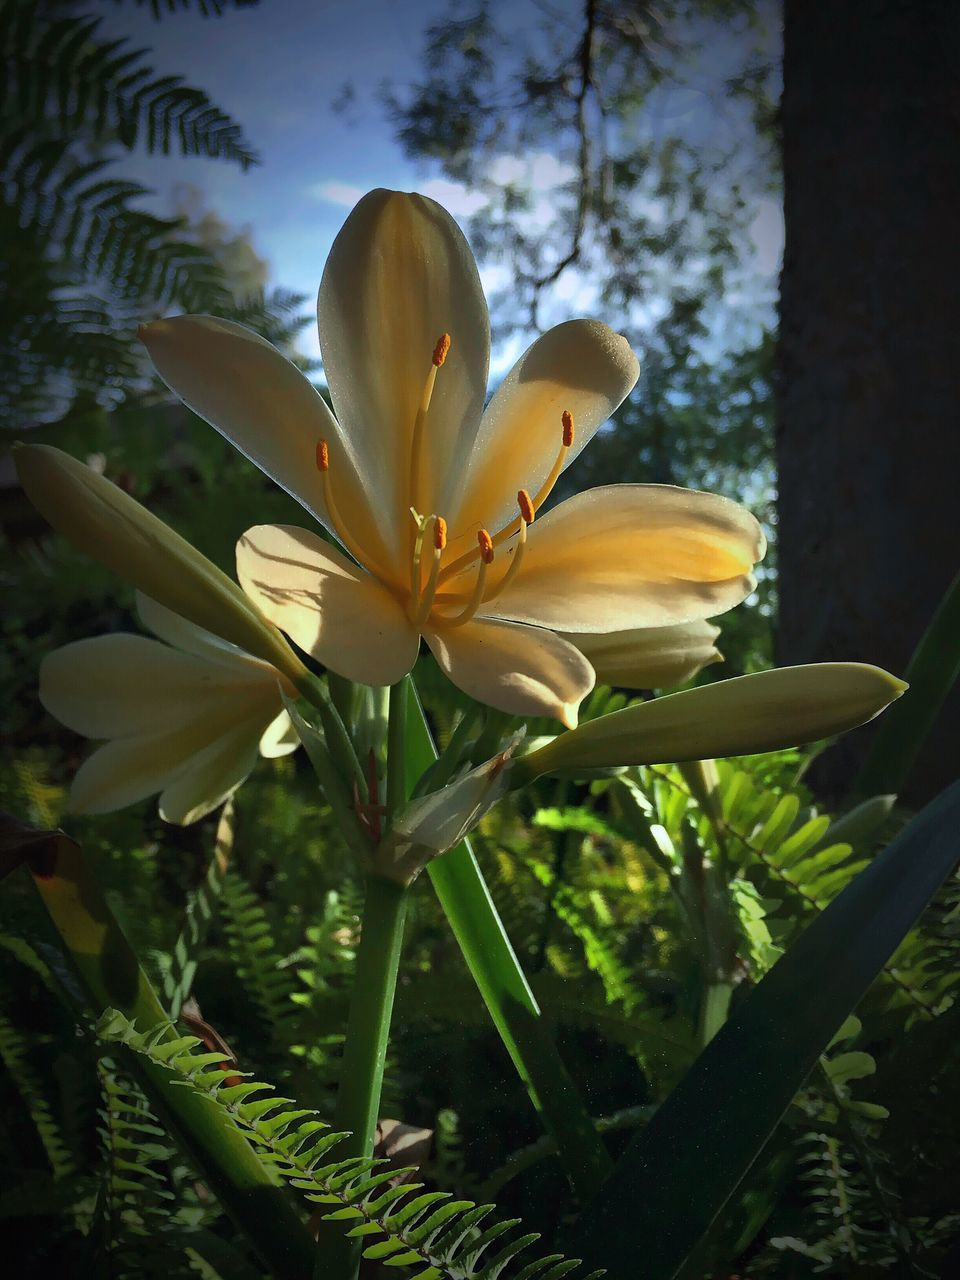 flower, petal, growth, fragility, nature, beauty in nature, flower head, freshness, plant, blooming, day, outdoors, no people, close-up, leaf, day lily, frangipani